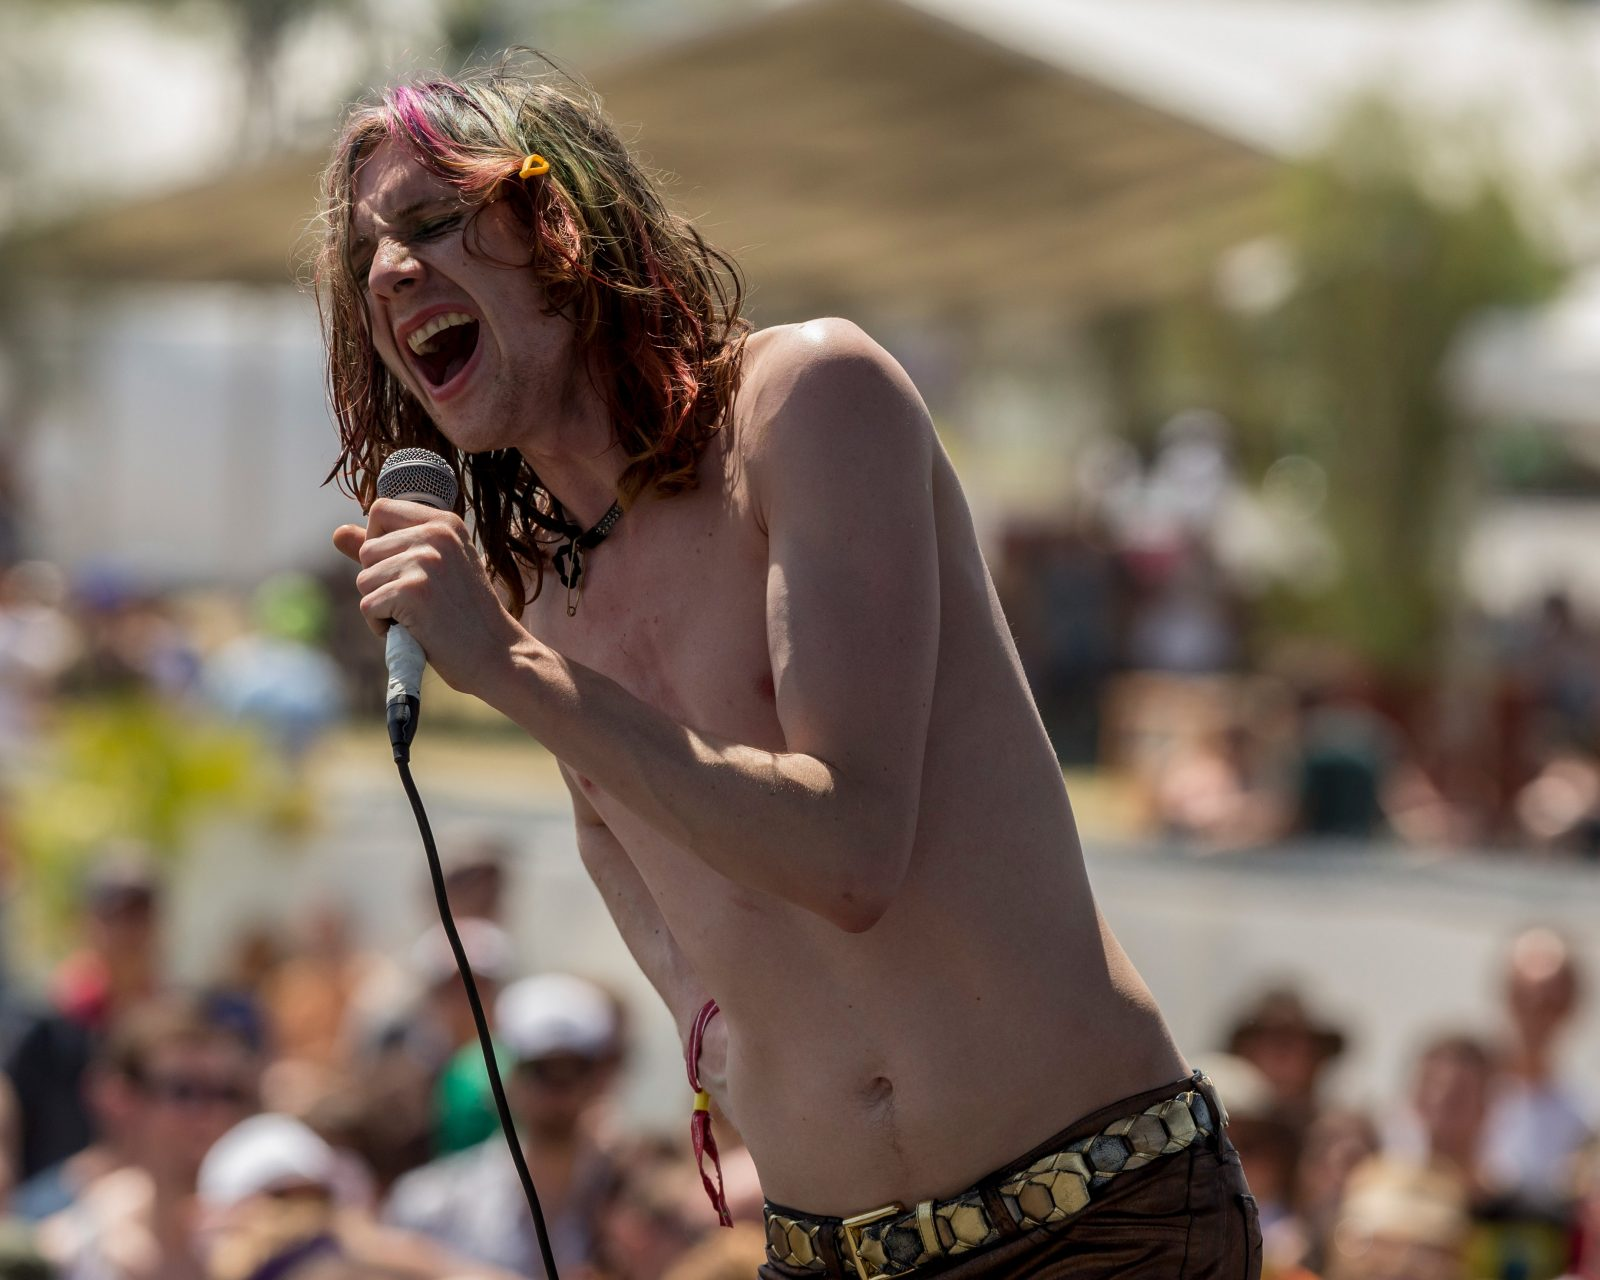 Singer Sam France and Foxygen will perform July 26 at the Tralf Music Hall. (Getty Images)